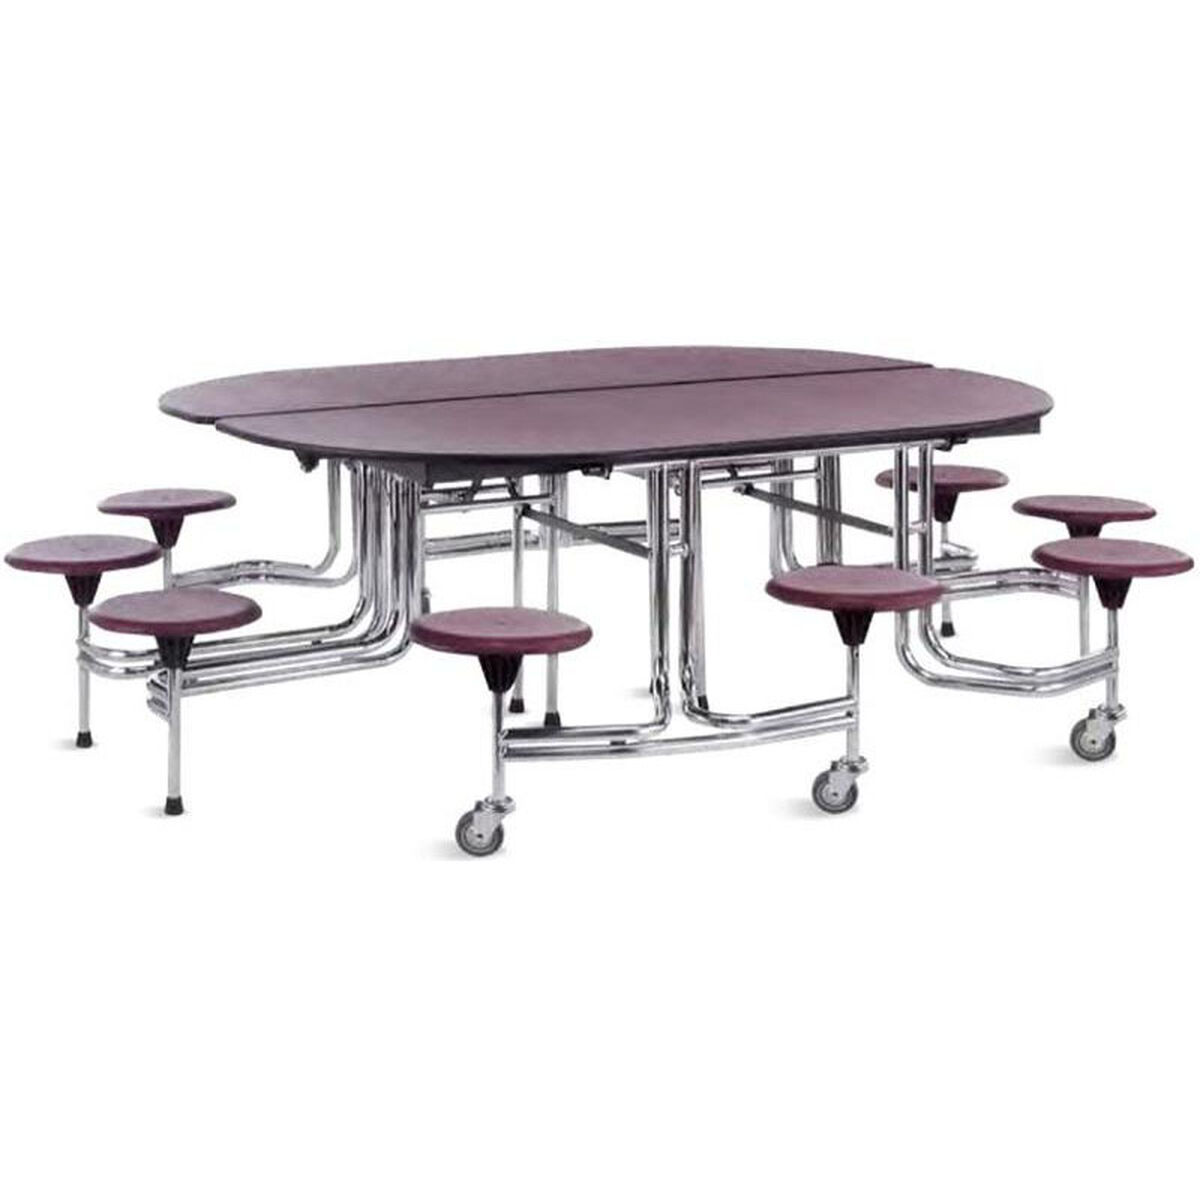 Foldable Oval Cafeteria Table With 10 Attached Round Seats